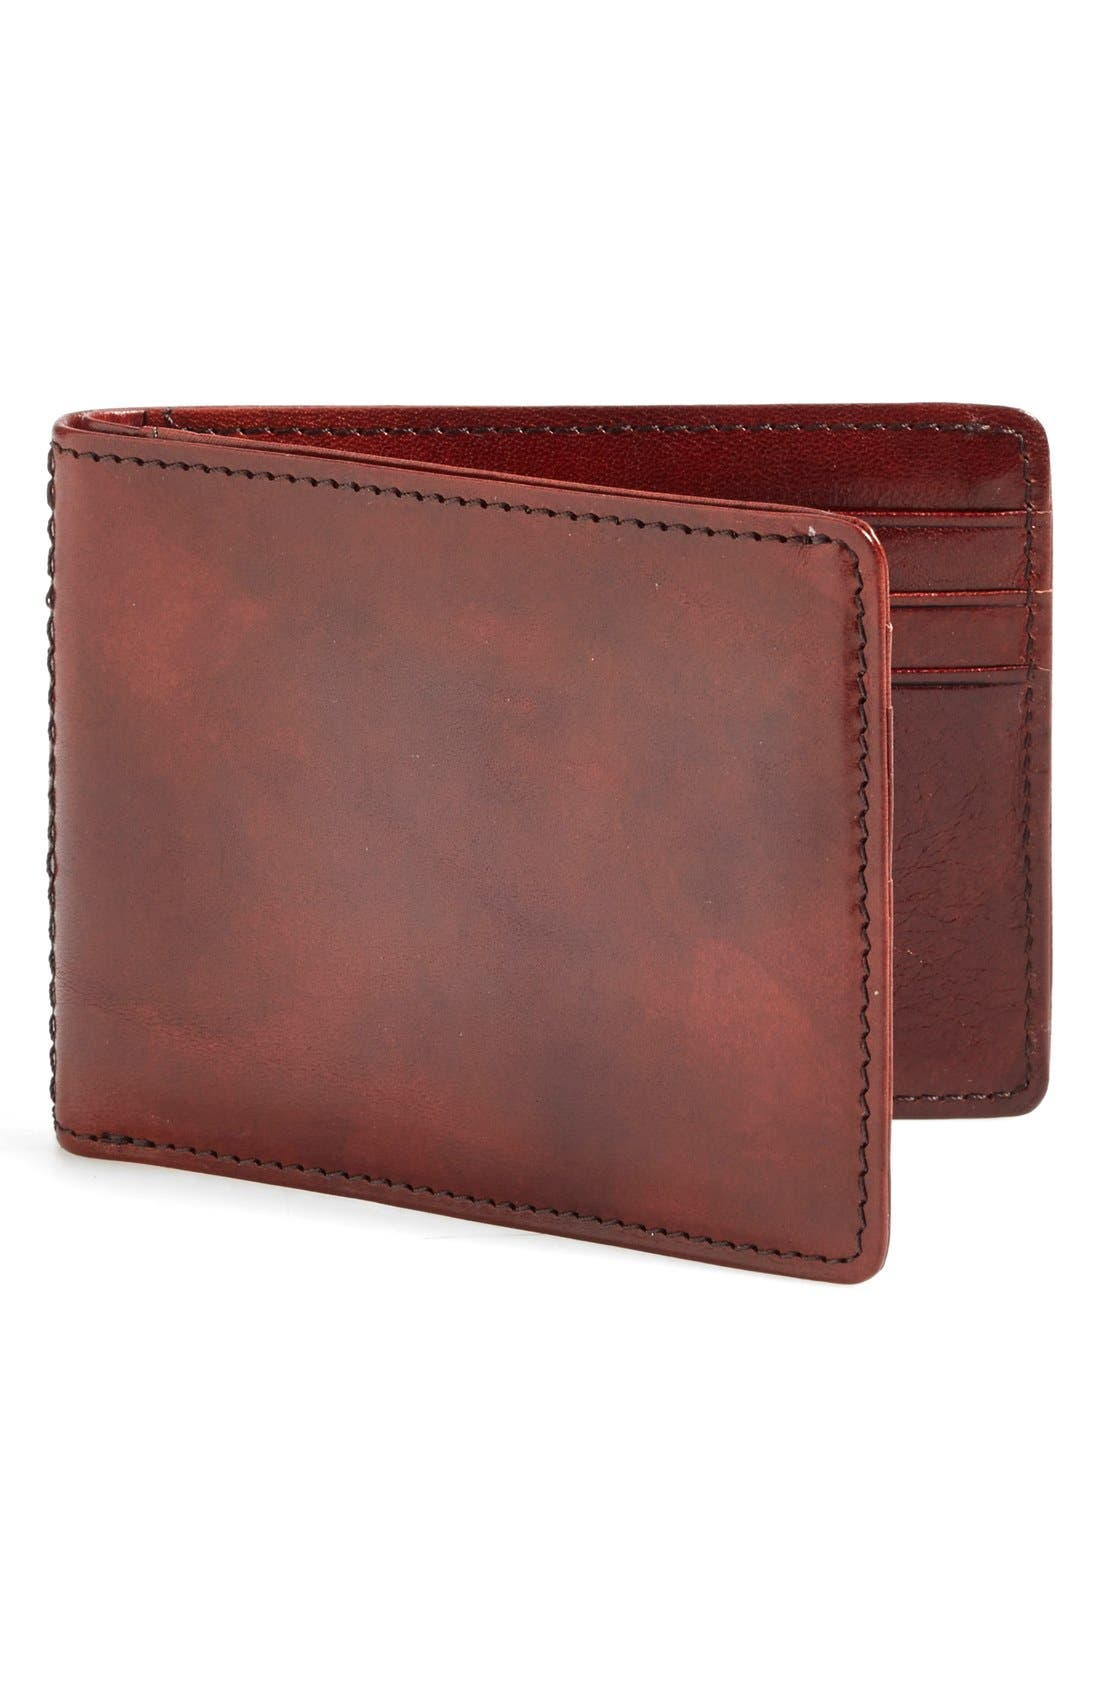 Small Bifold Wallet,                         Main,                         color, Brown